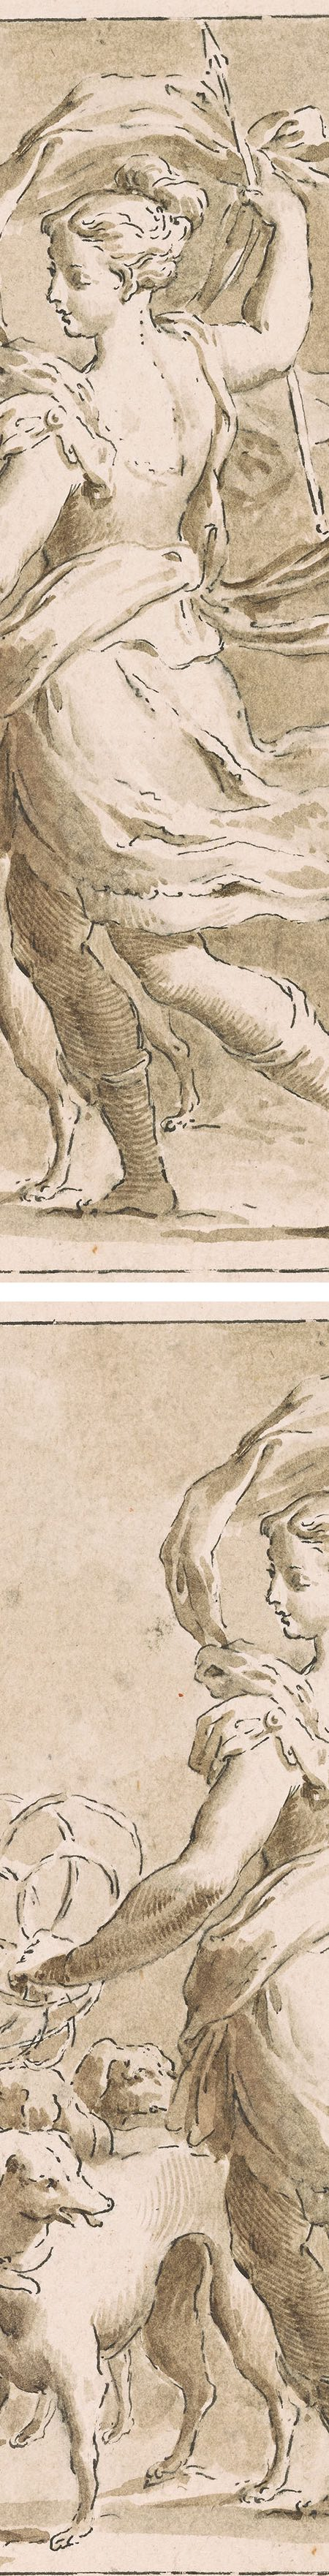 Frencesco Novelli, Diana and Her Hounds, ink and wash drawing (details)